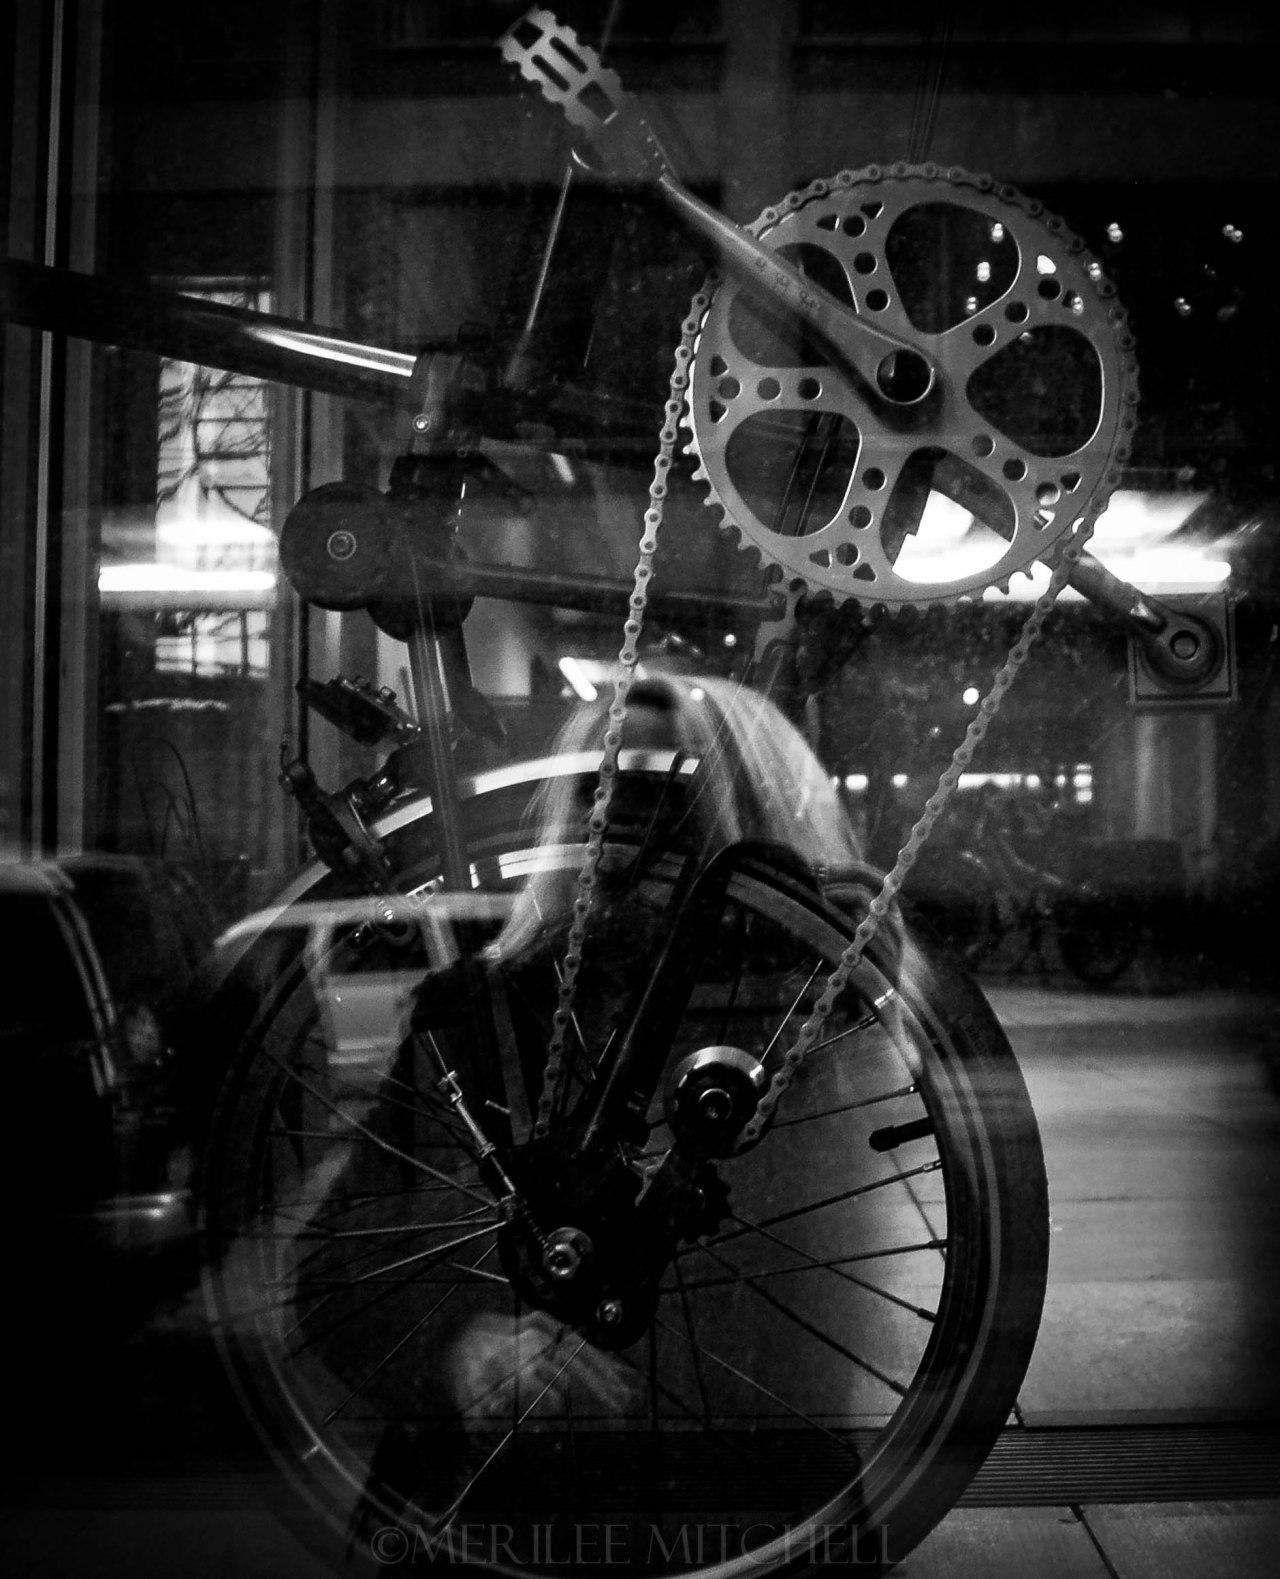 Bicycle. Copyright Merilee Mitchell